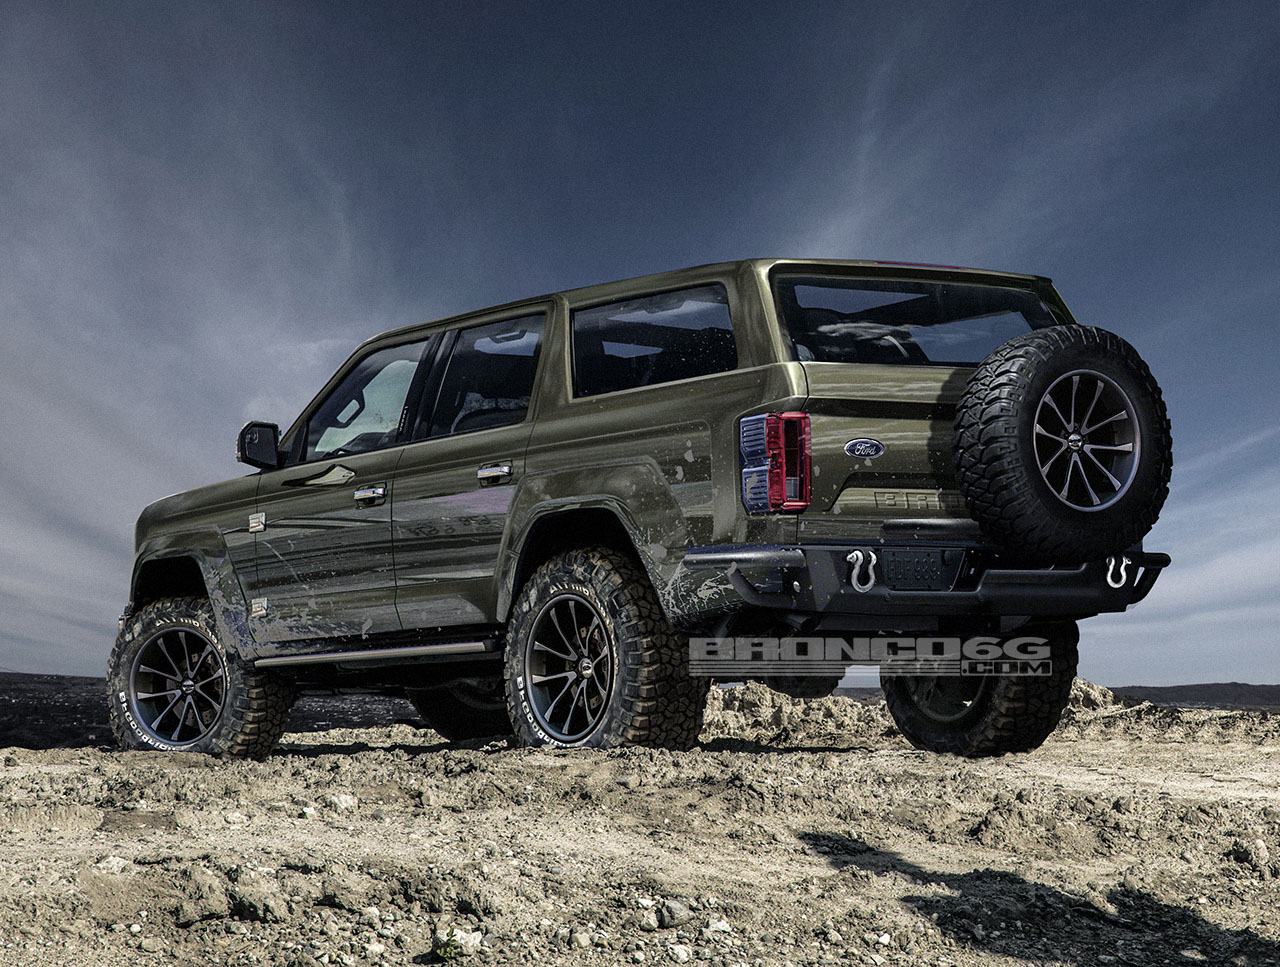 4 Door 2020 Ford Bronco Concept Isnt Real Still Awesome Regardless Paint Jobs Bronco6gcom